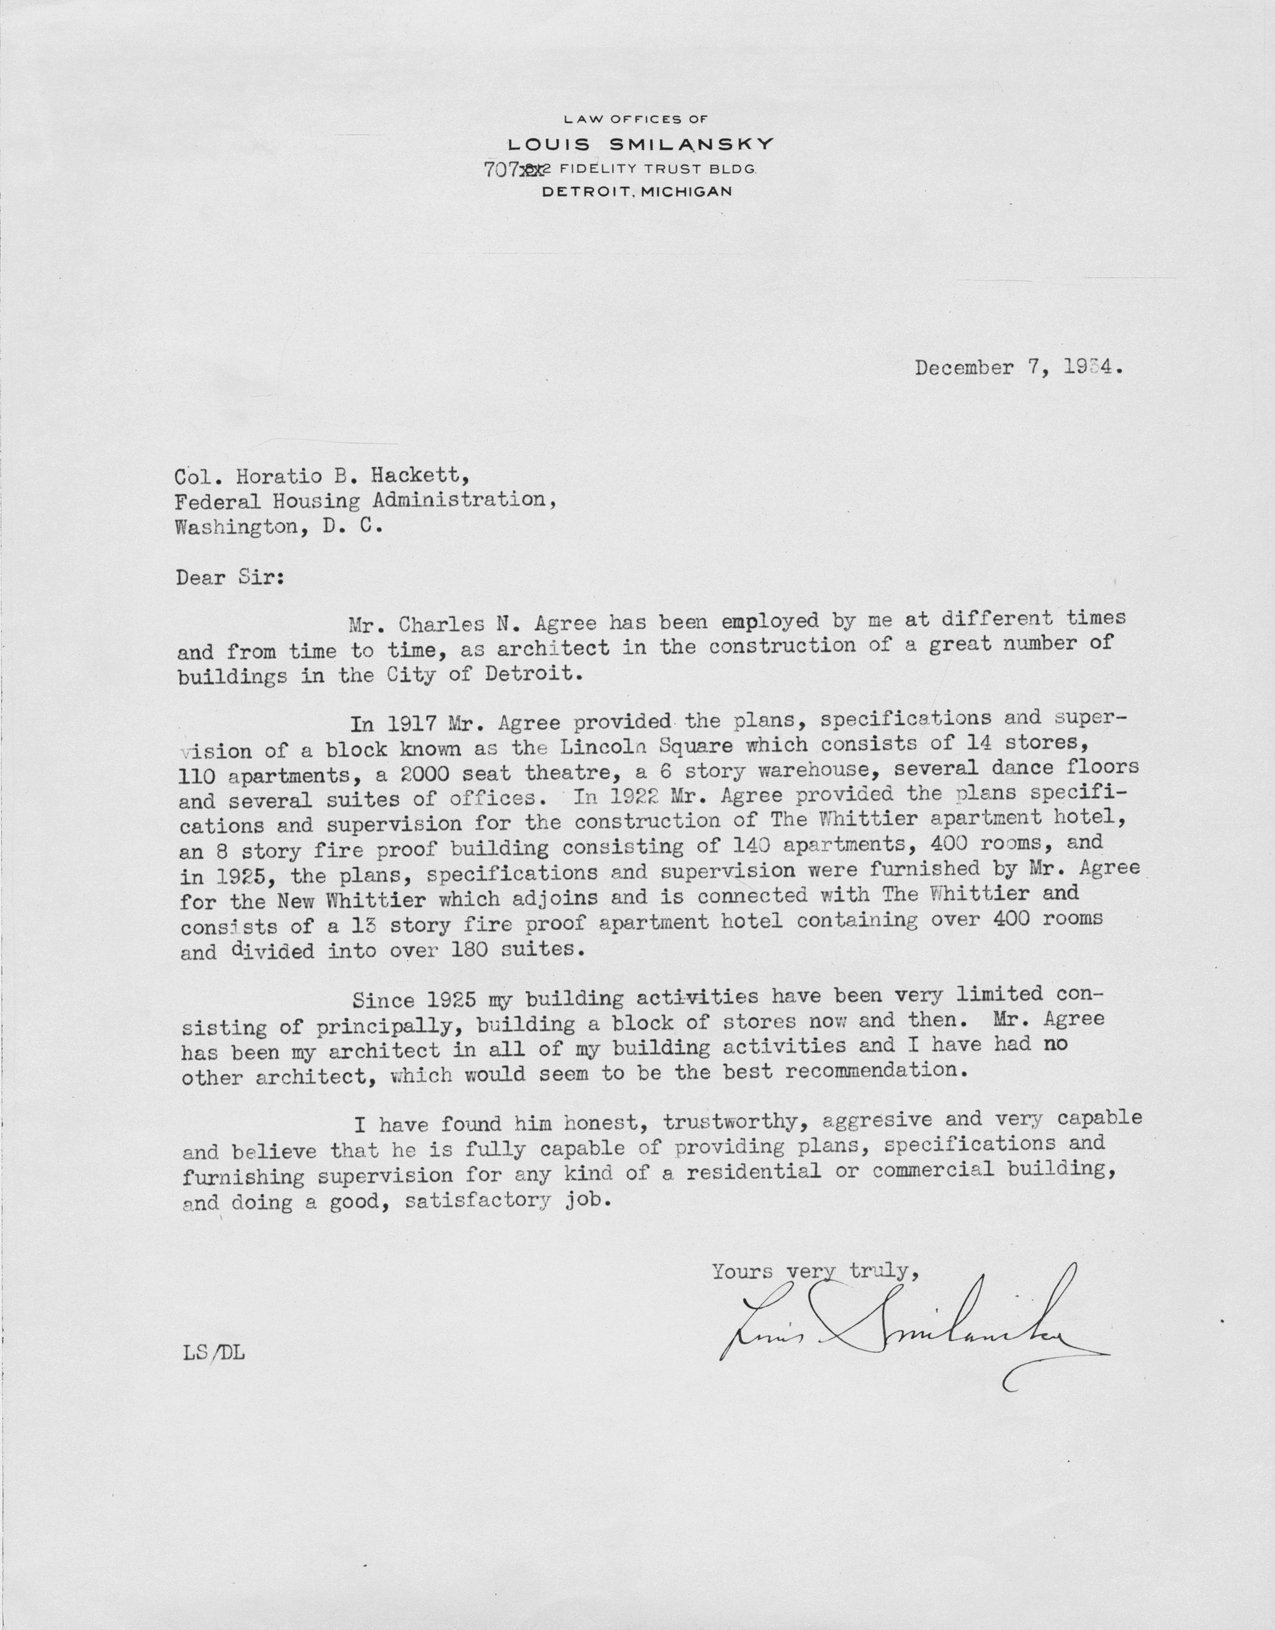 Letter Of Recommendation for Housing Inspirational Letter Of Re Mendation to the Federal Housing